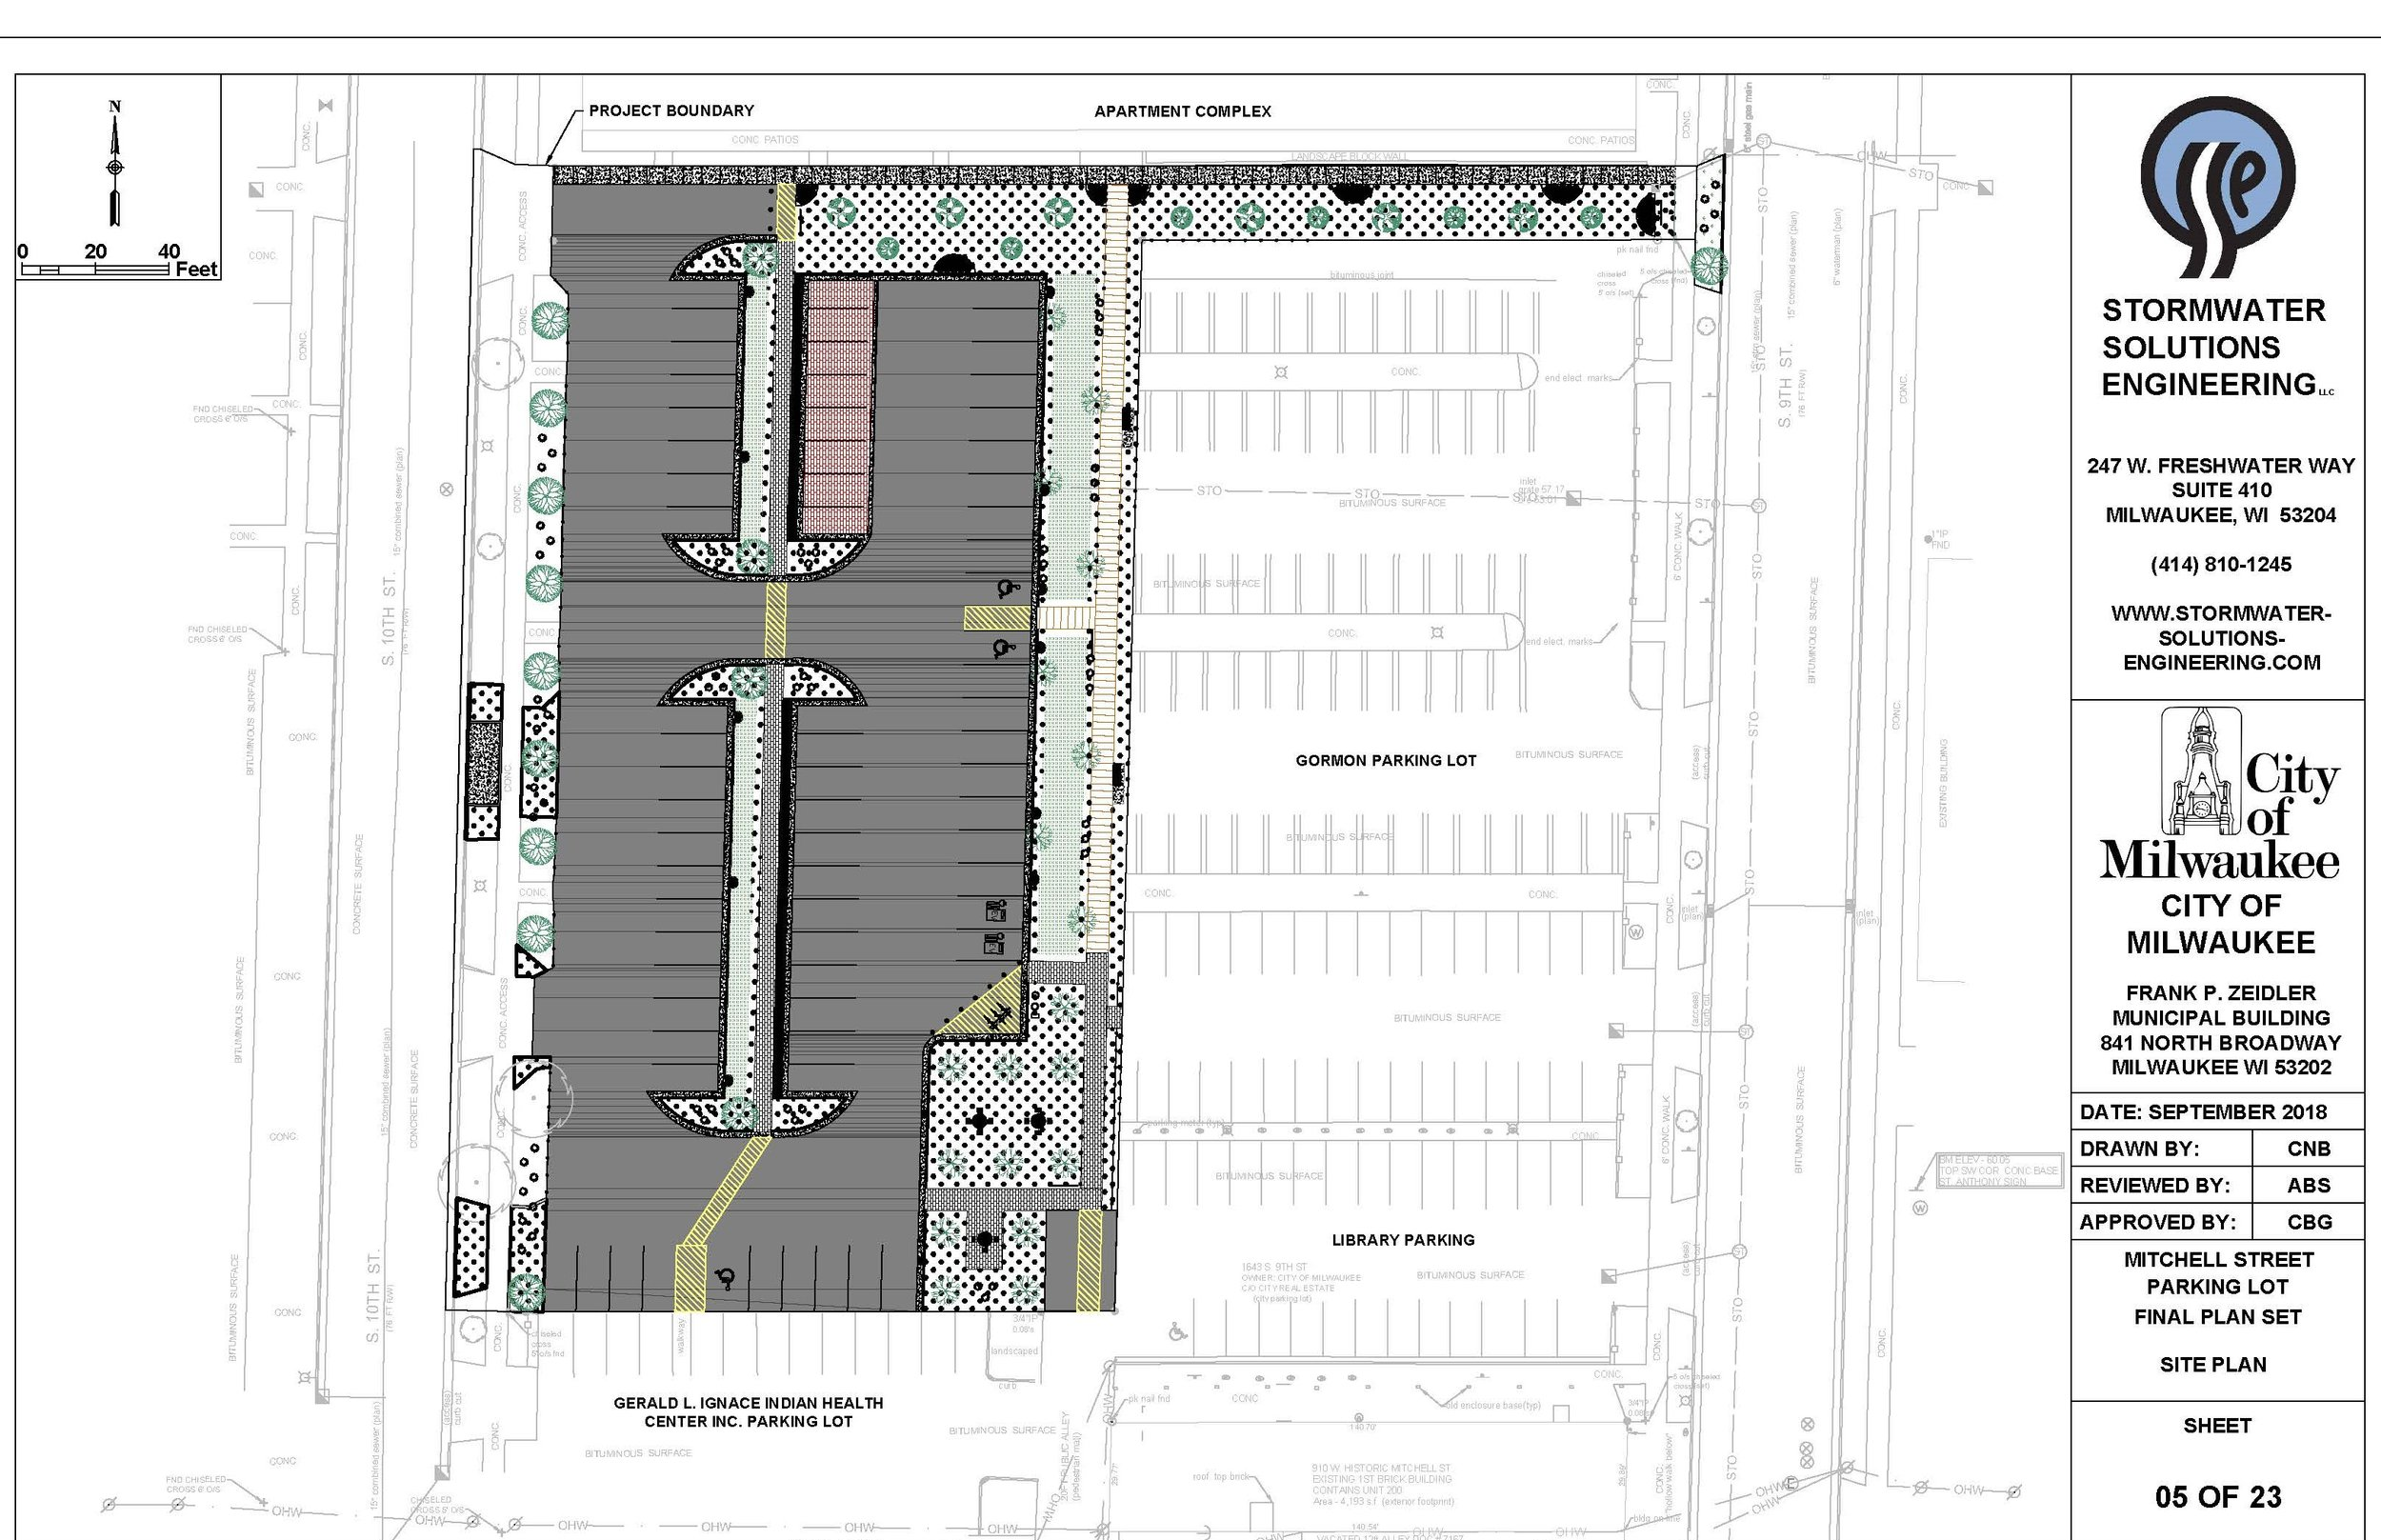 SSE_Mitchell Ave-Green Parking Lot_Site Plan.jpg